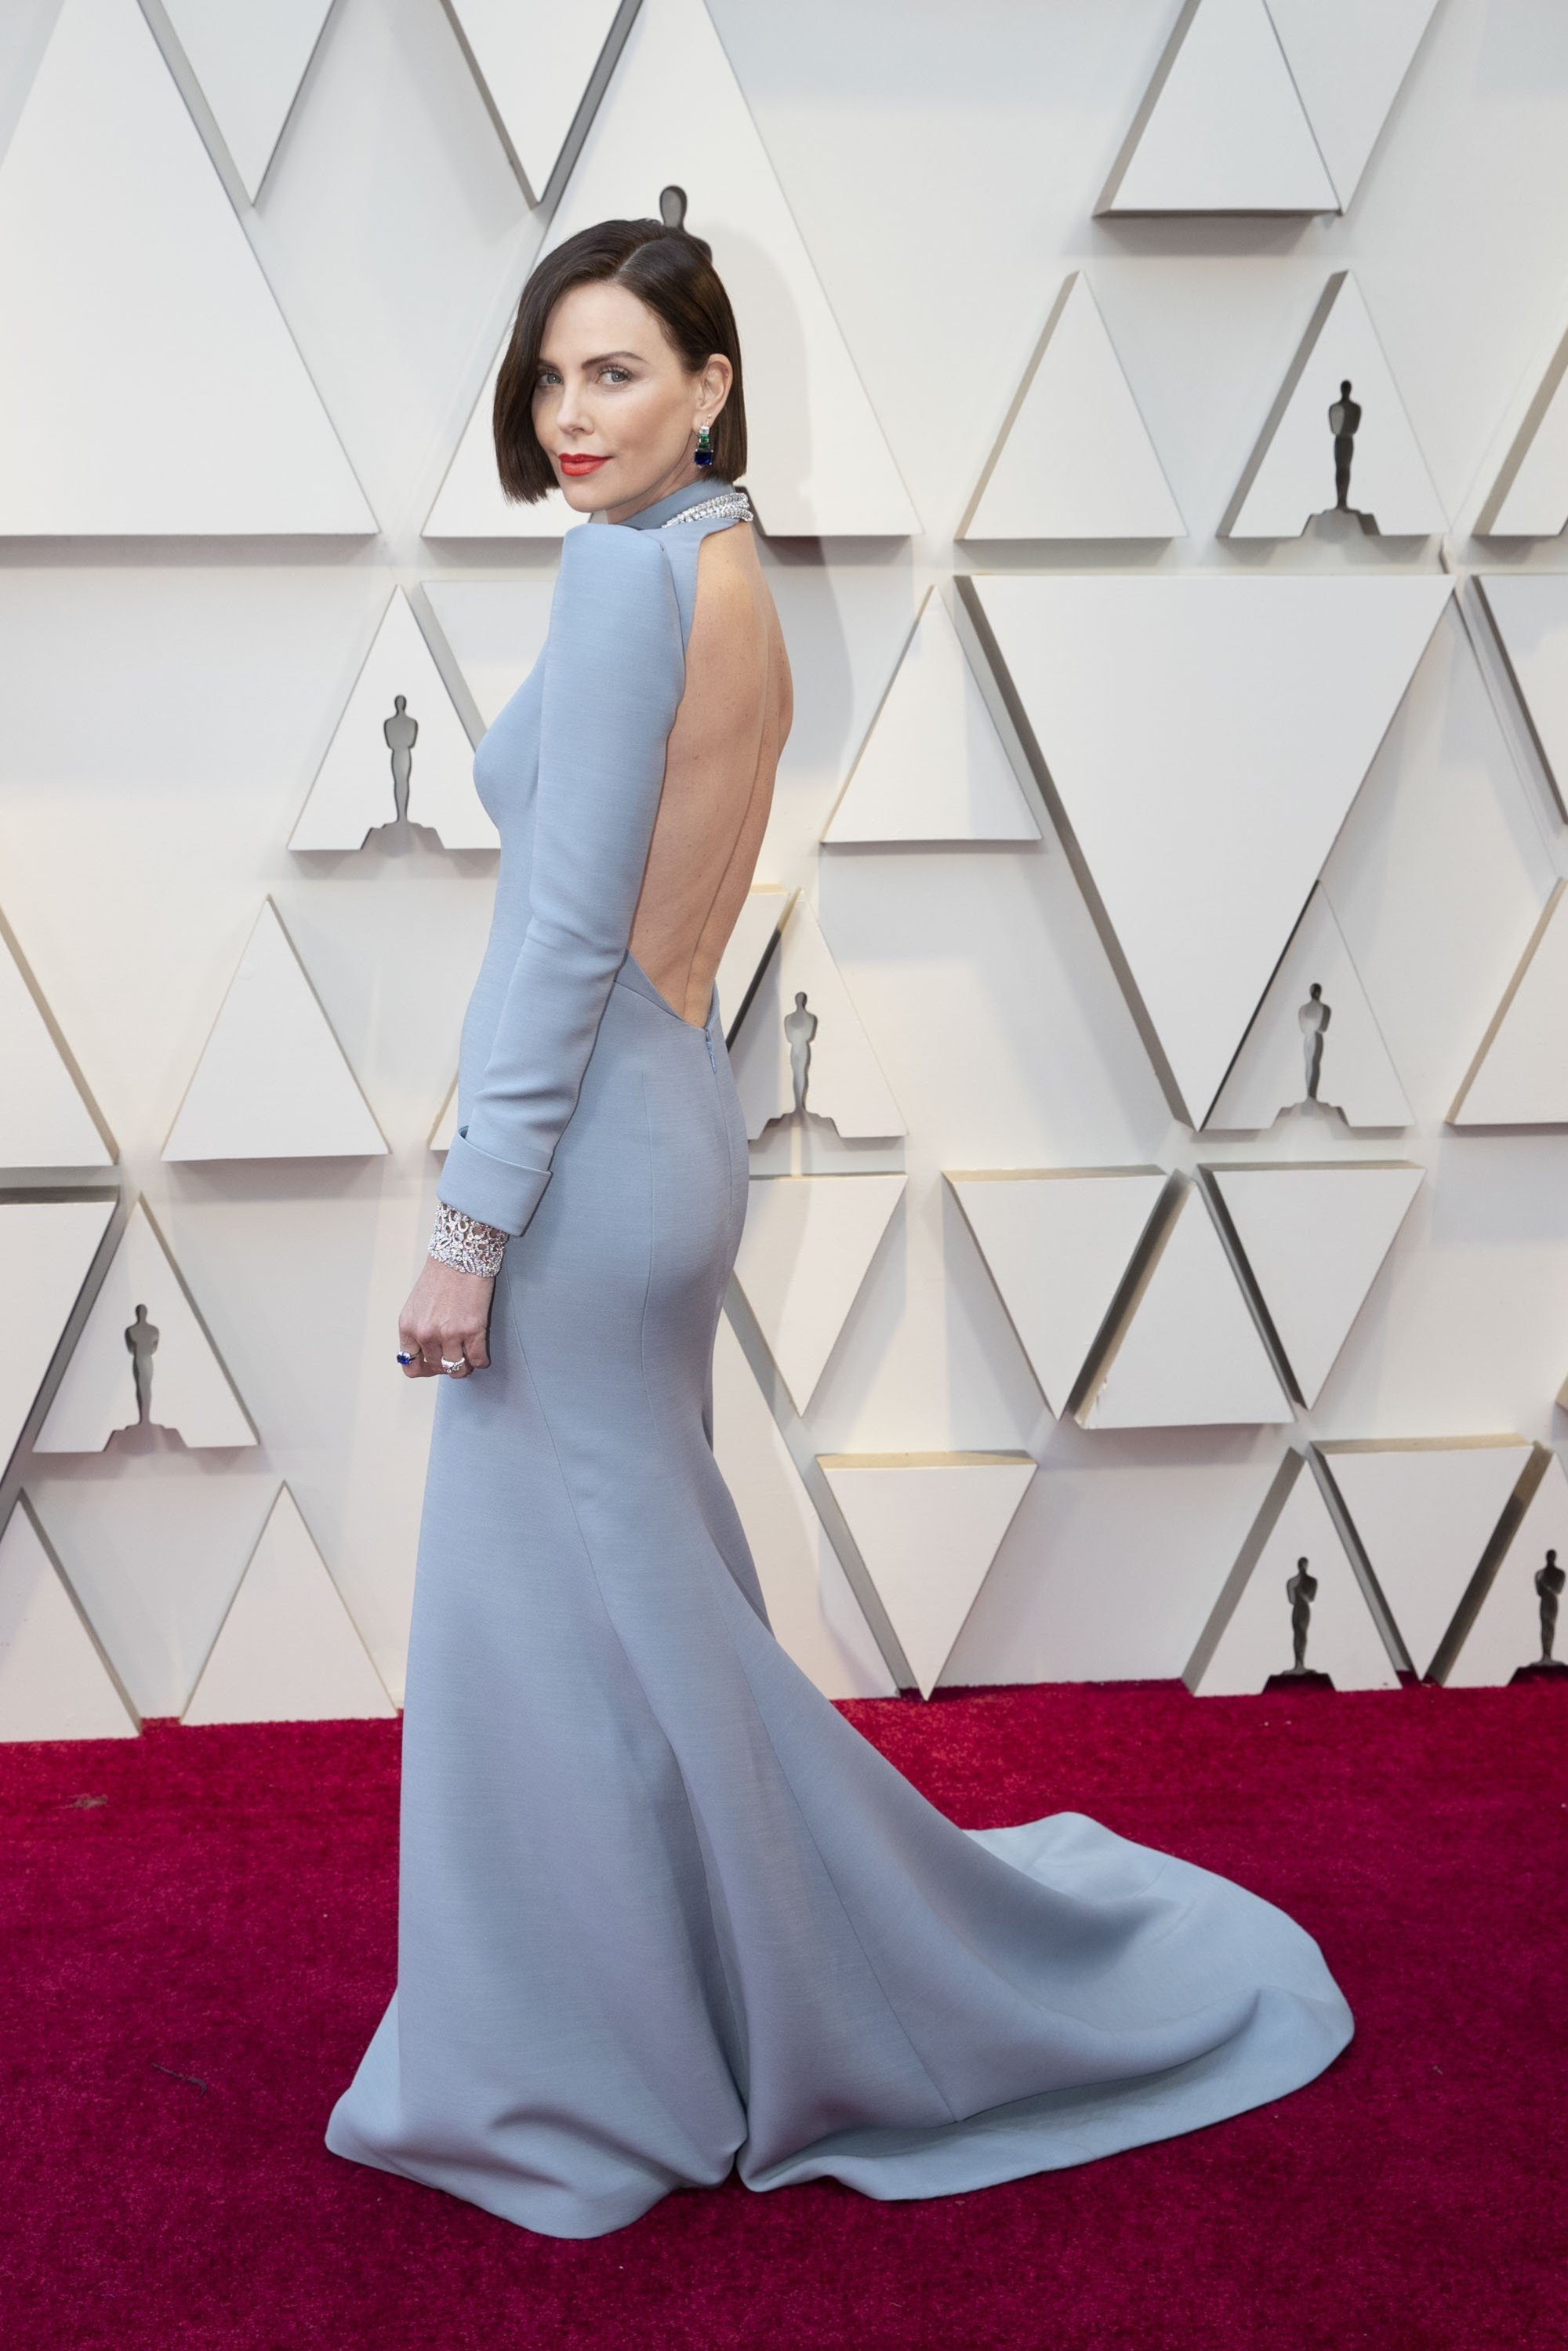 Charlize Theron: Red Carpet from the The 91st Oscar broadcast on Sunday, Feb. 24, 2019, at the Dolby Theatre.